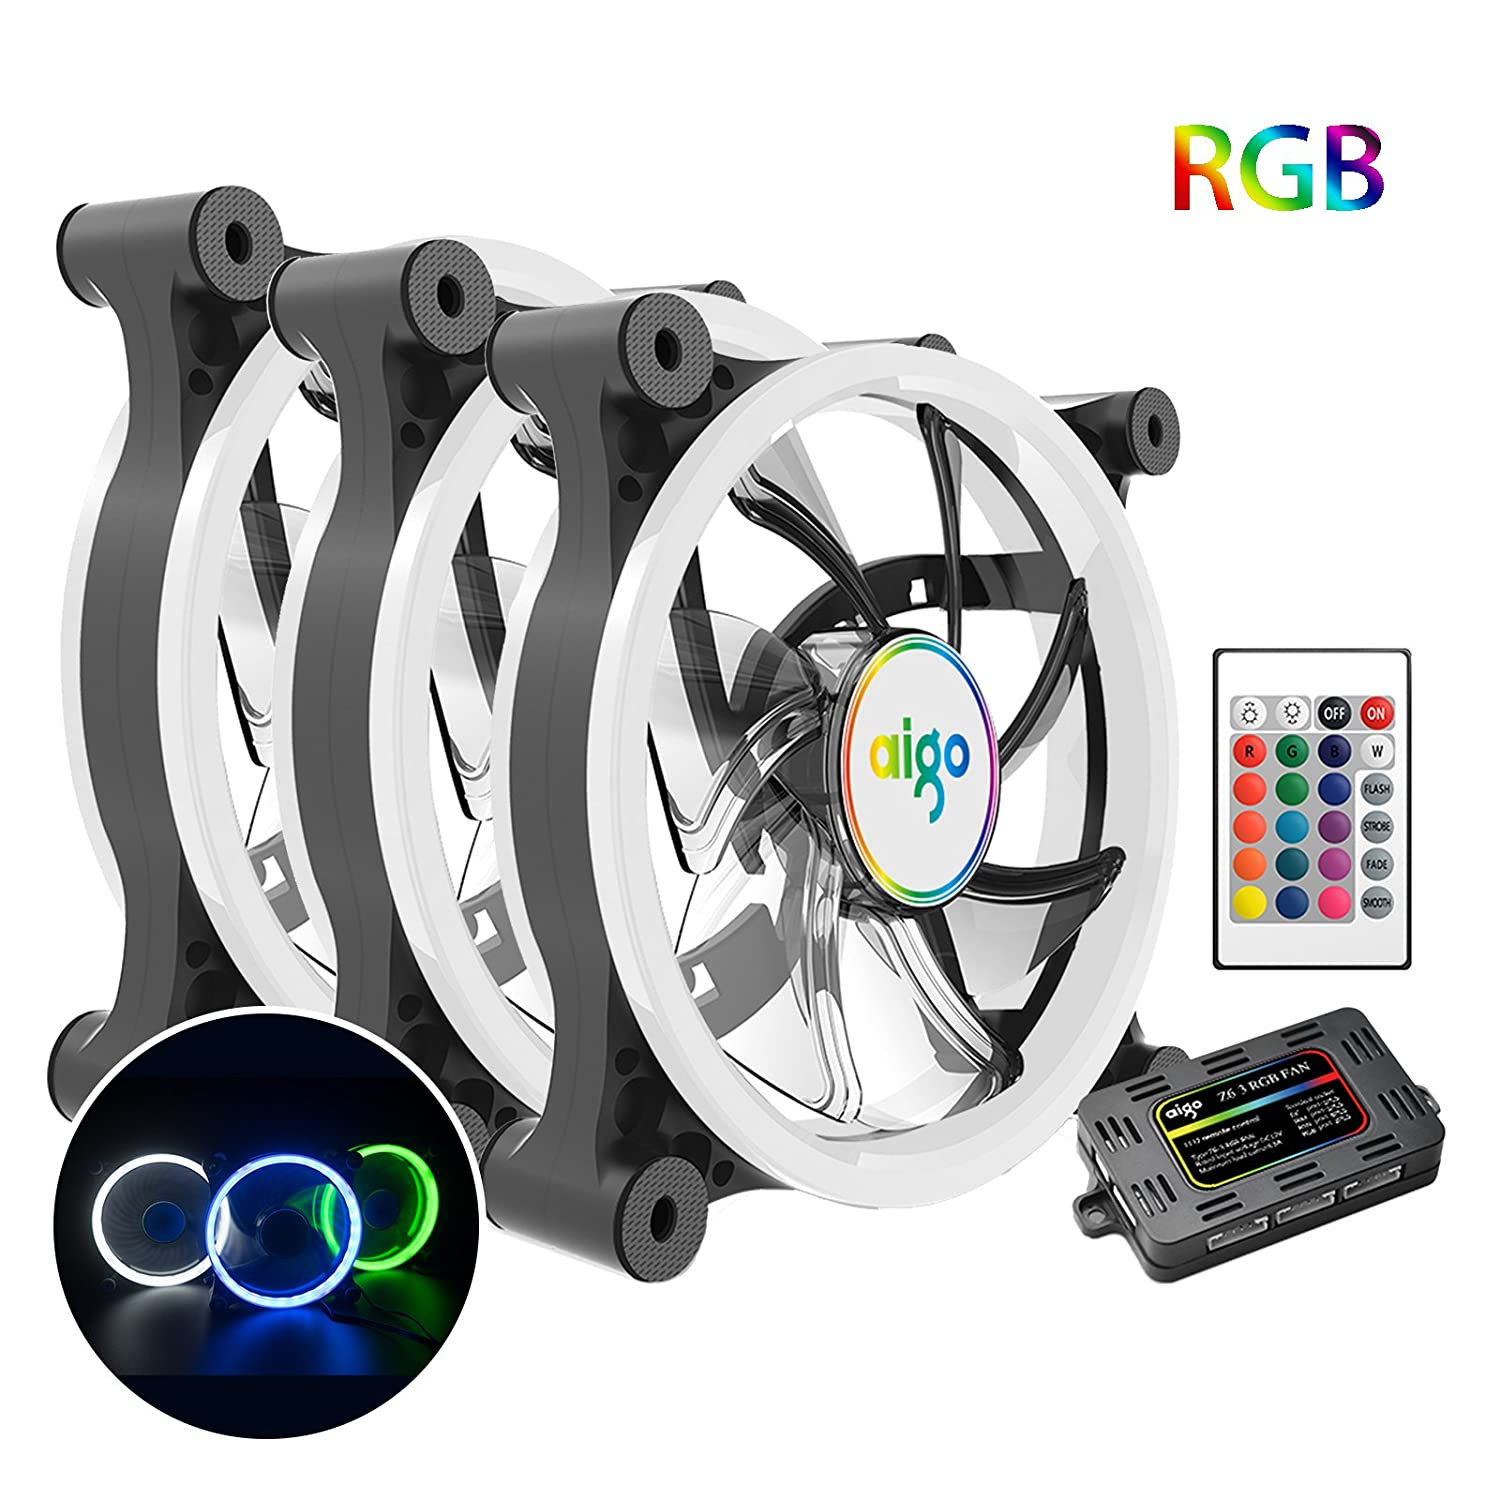 3 Pack 120mm Aigo Computer Case Pc Cooling Fan Rgb Led Quiet High Electric Wiring Kit Adjustable Probe Style Airflow Color Cpu Cooler And Radiator Support Intel Amd Diy Mod Am4